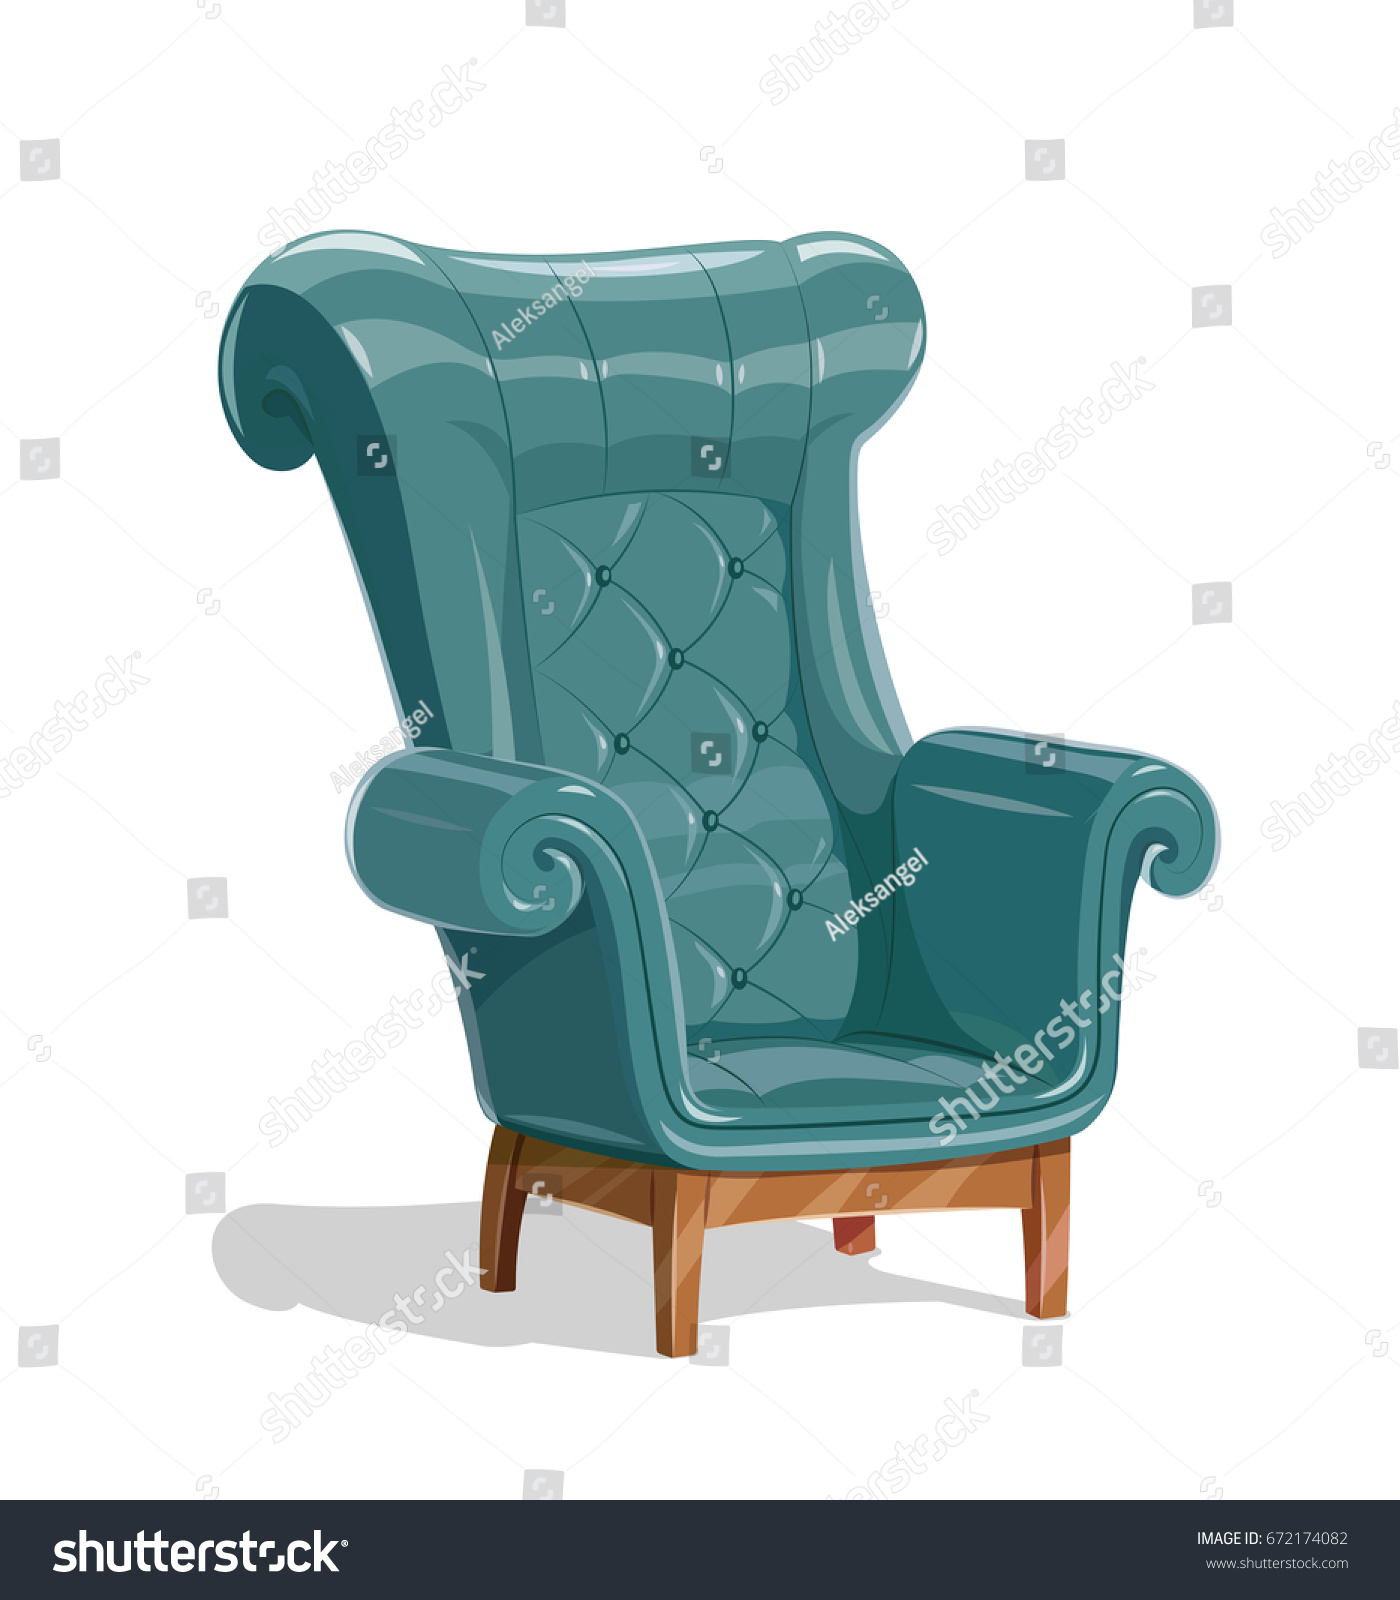 Big Leather Armchair. Vintage Comfortable Soft Furniture For Relaxation.  Isolated White Background. Vector